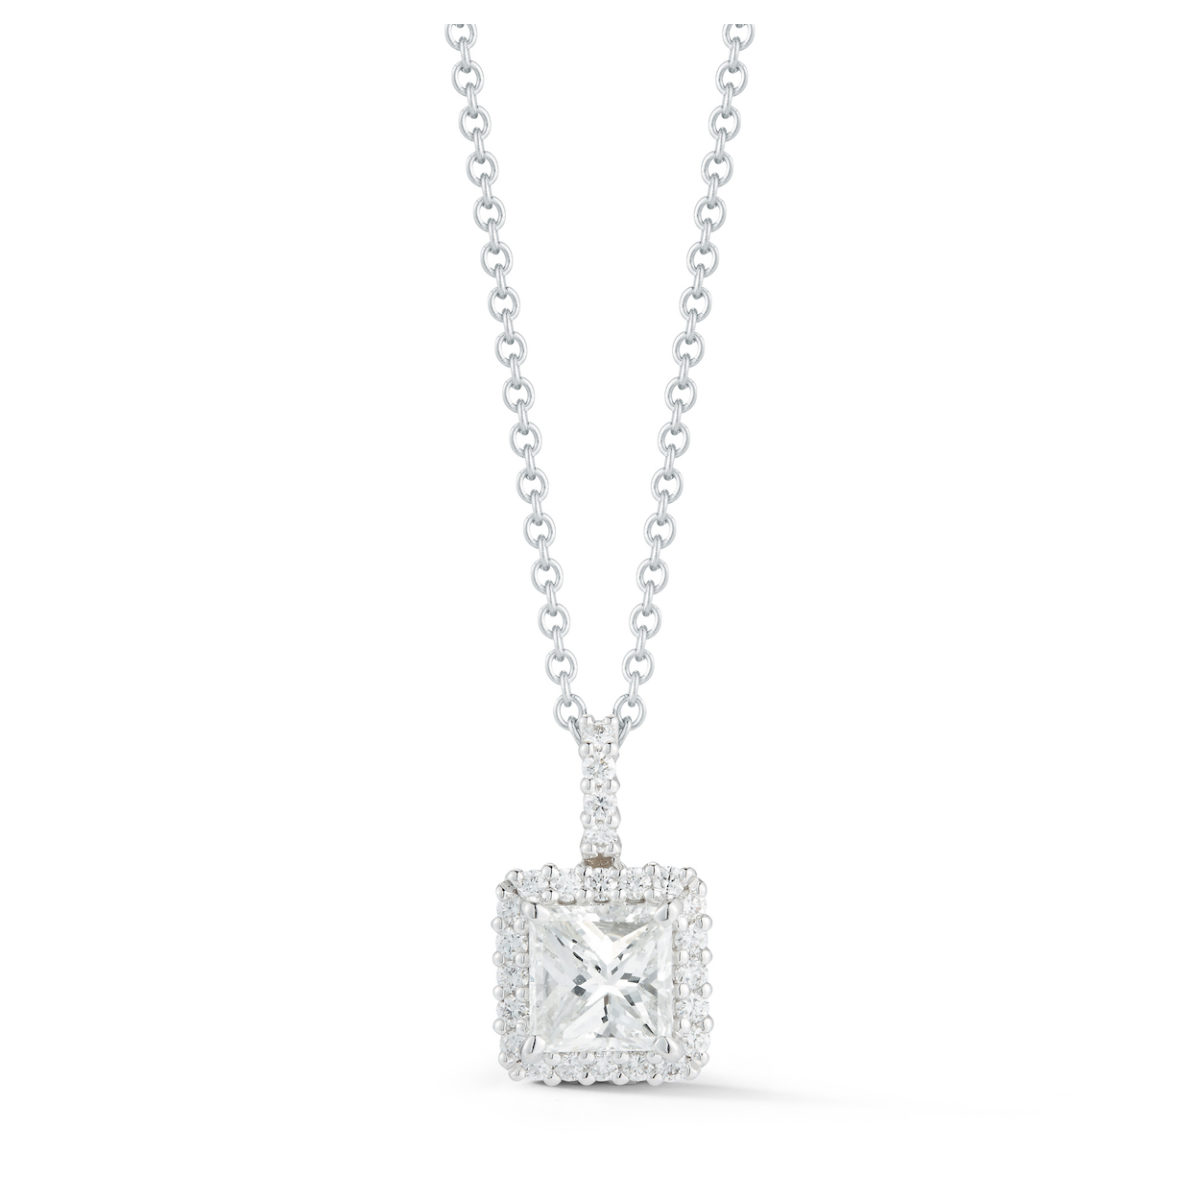 089 carat princess cut diamond halo pendant marshall pierce princess cut diamond halo pendant with diamond bail in white gold marshall pierce company chicago aloadofball Gallery